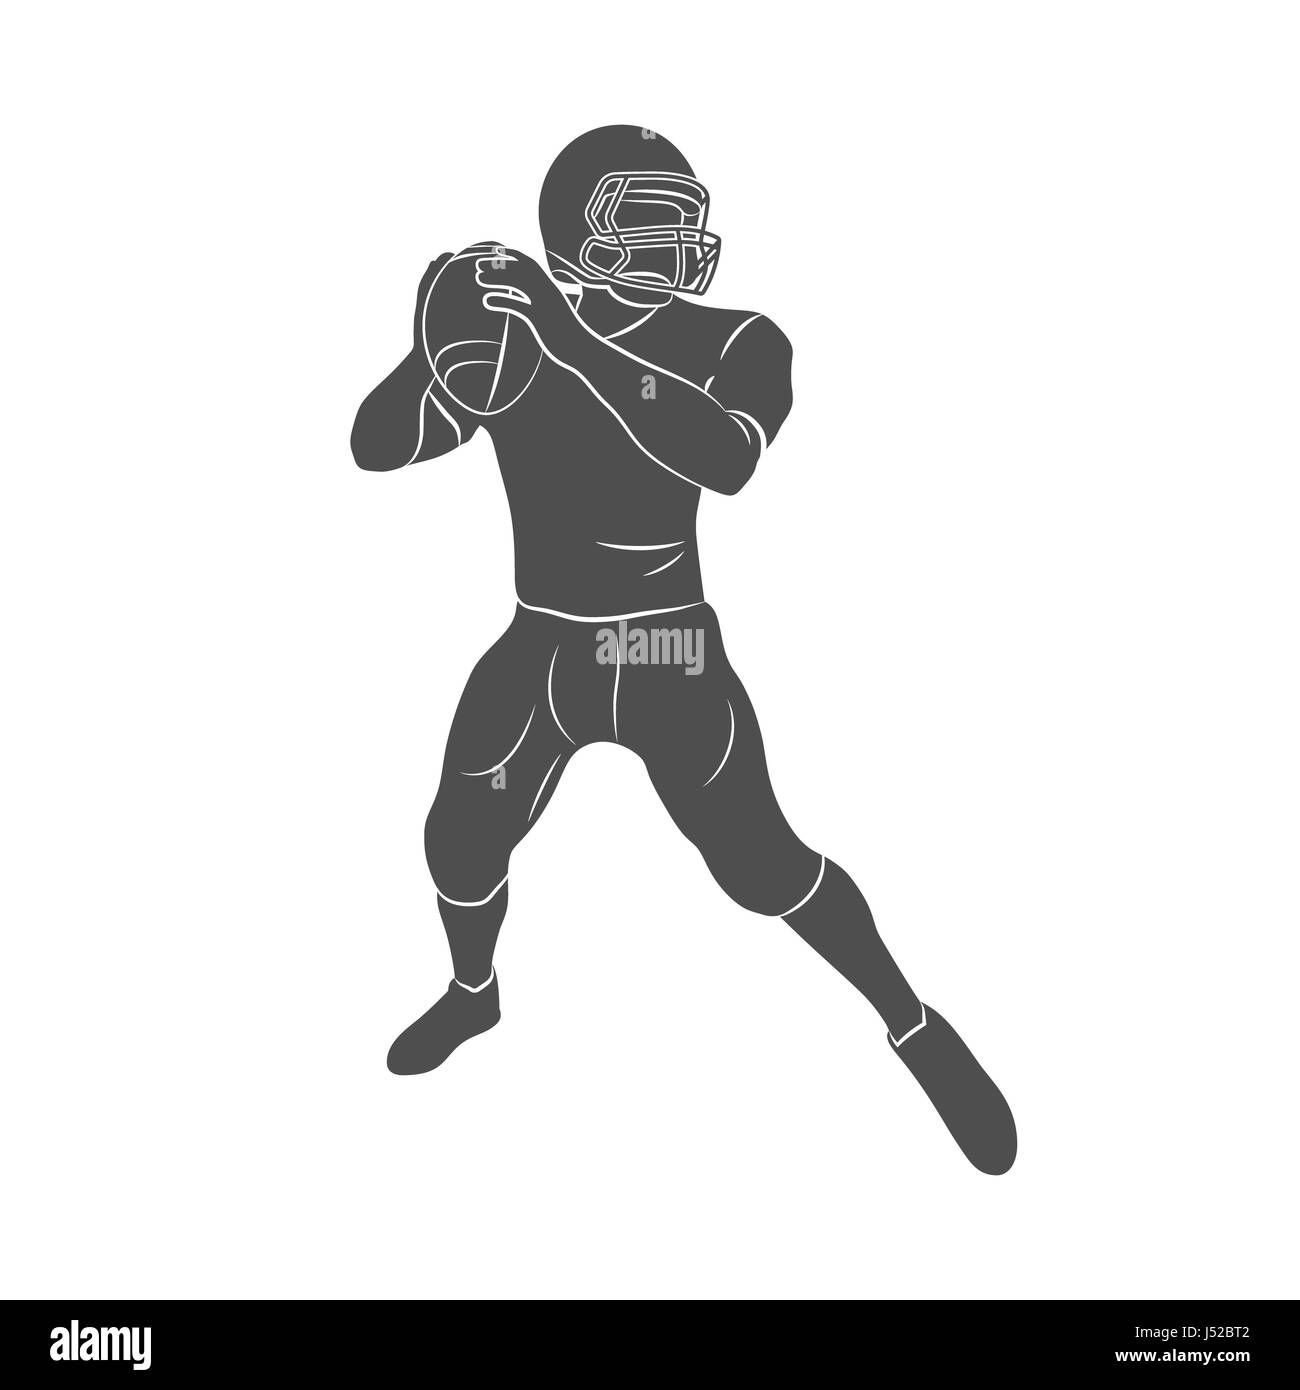 Silhouette american football player on a white background. Photo illustration. - Stock Image